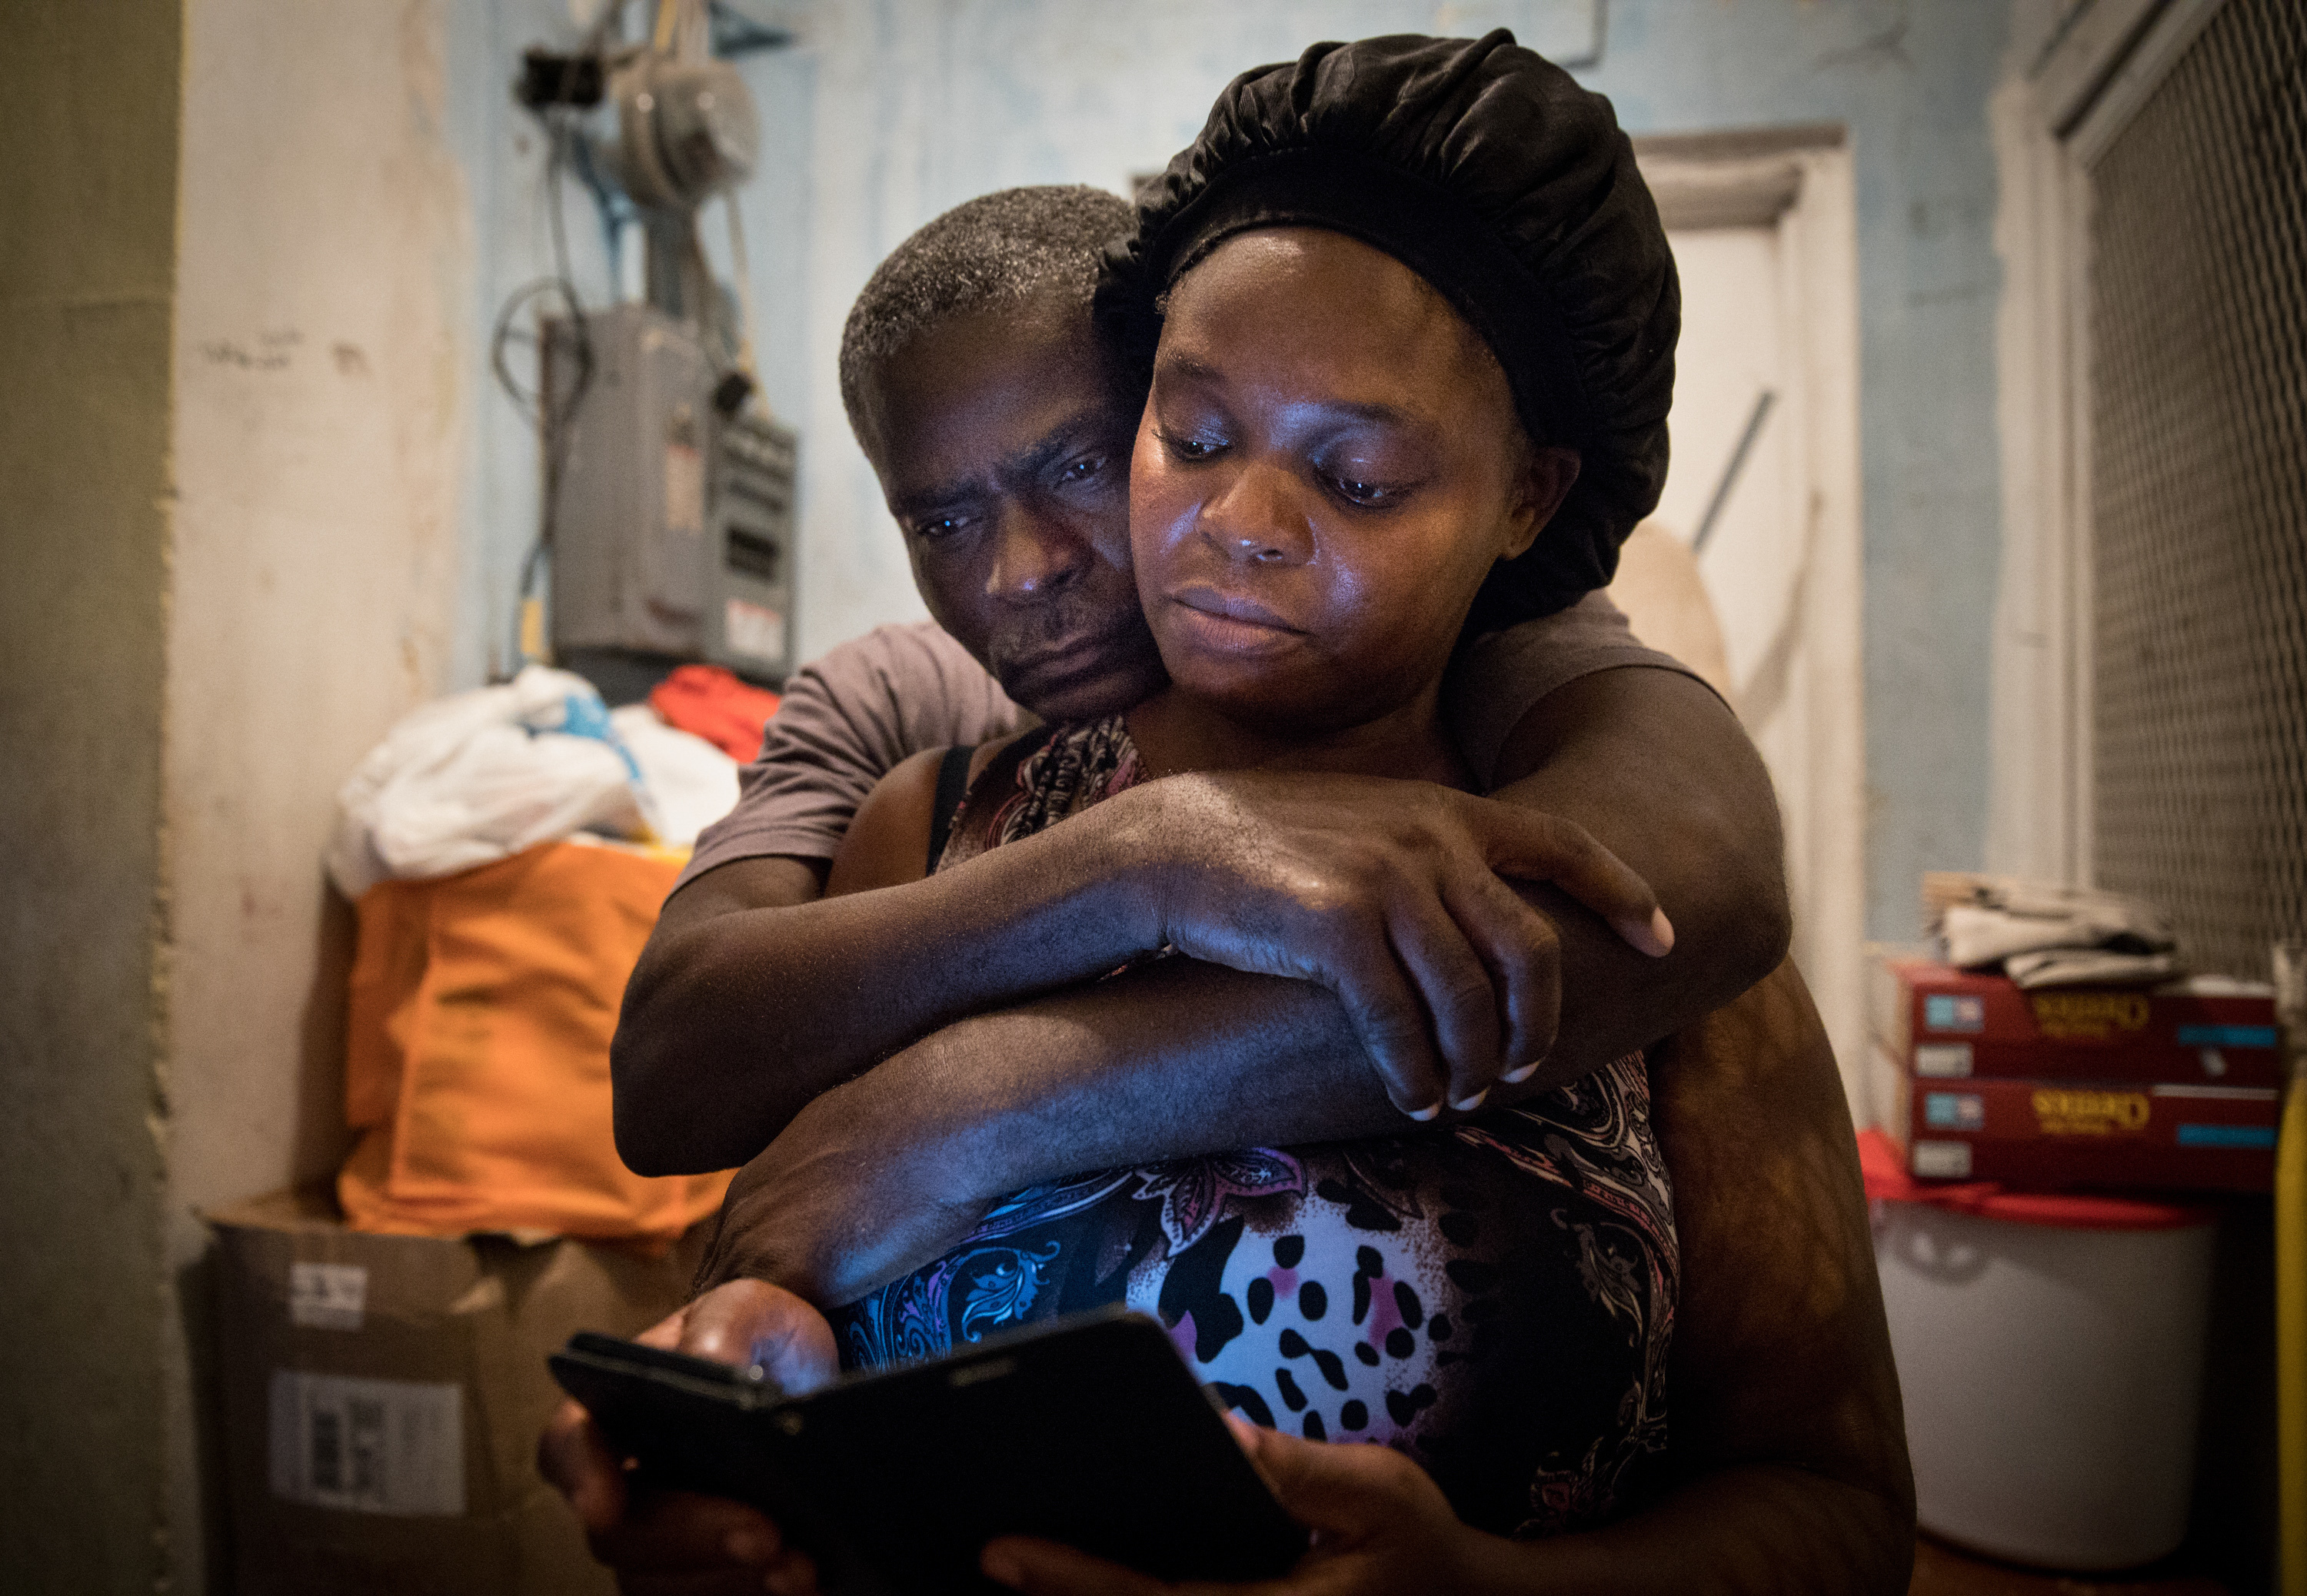 PHOTOS: After The Storm, Haitians In The Bahamas Depend On The Kindness Of Strangers